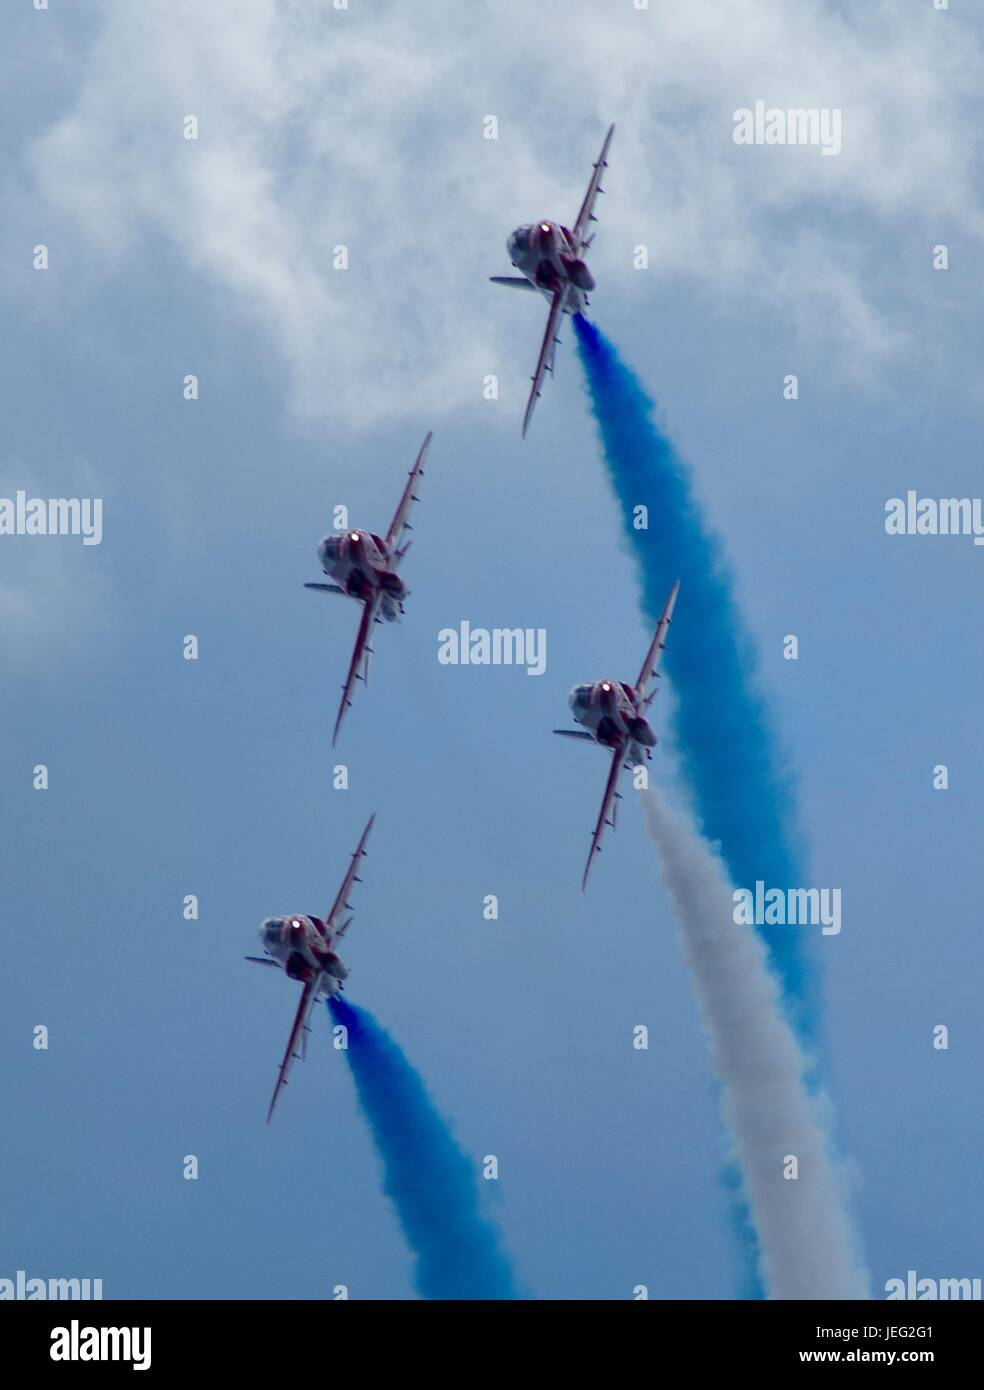 The Royal Air Force Acrobatic Team, The Red Arrows, Displaying at Dawlish Airshow 2015. Devon, UK. August, 2015. - Stock Image